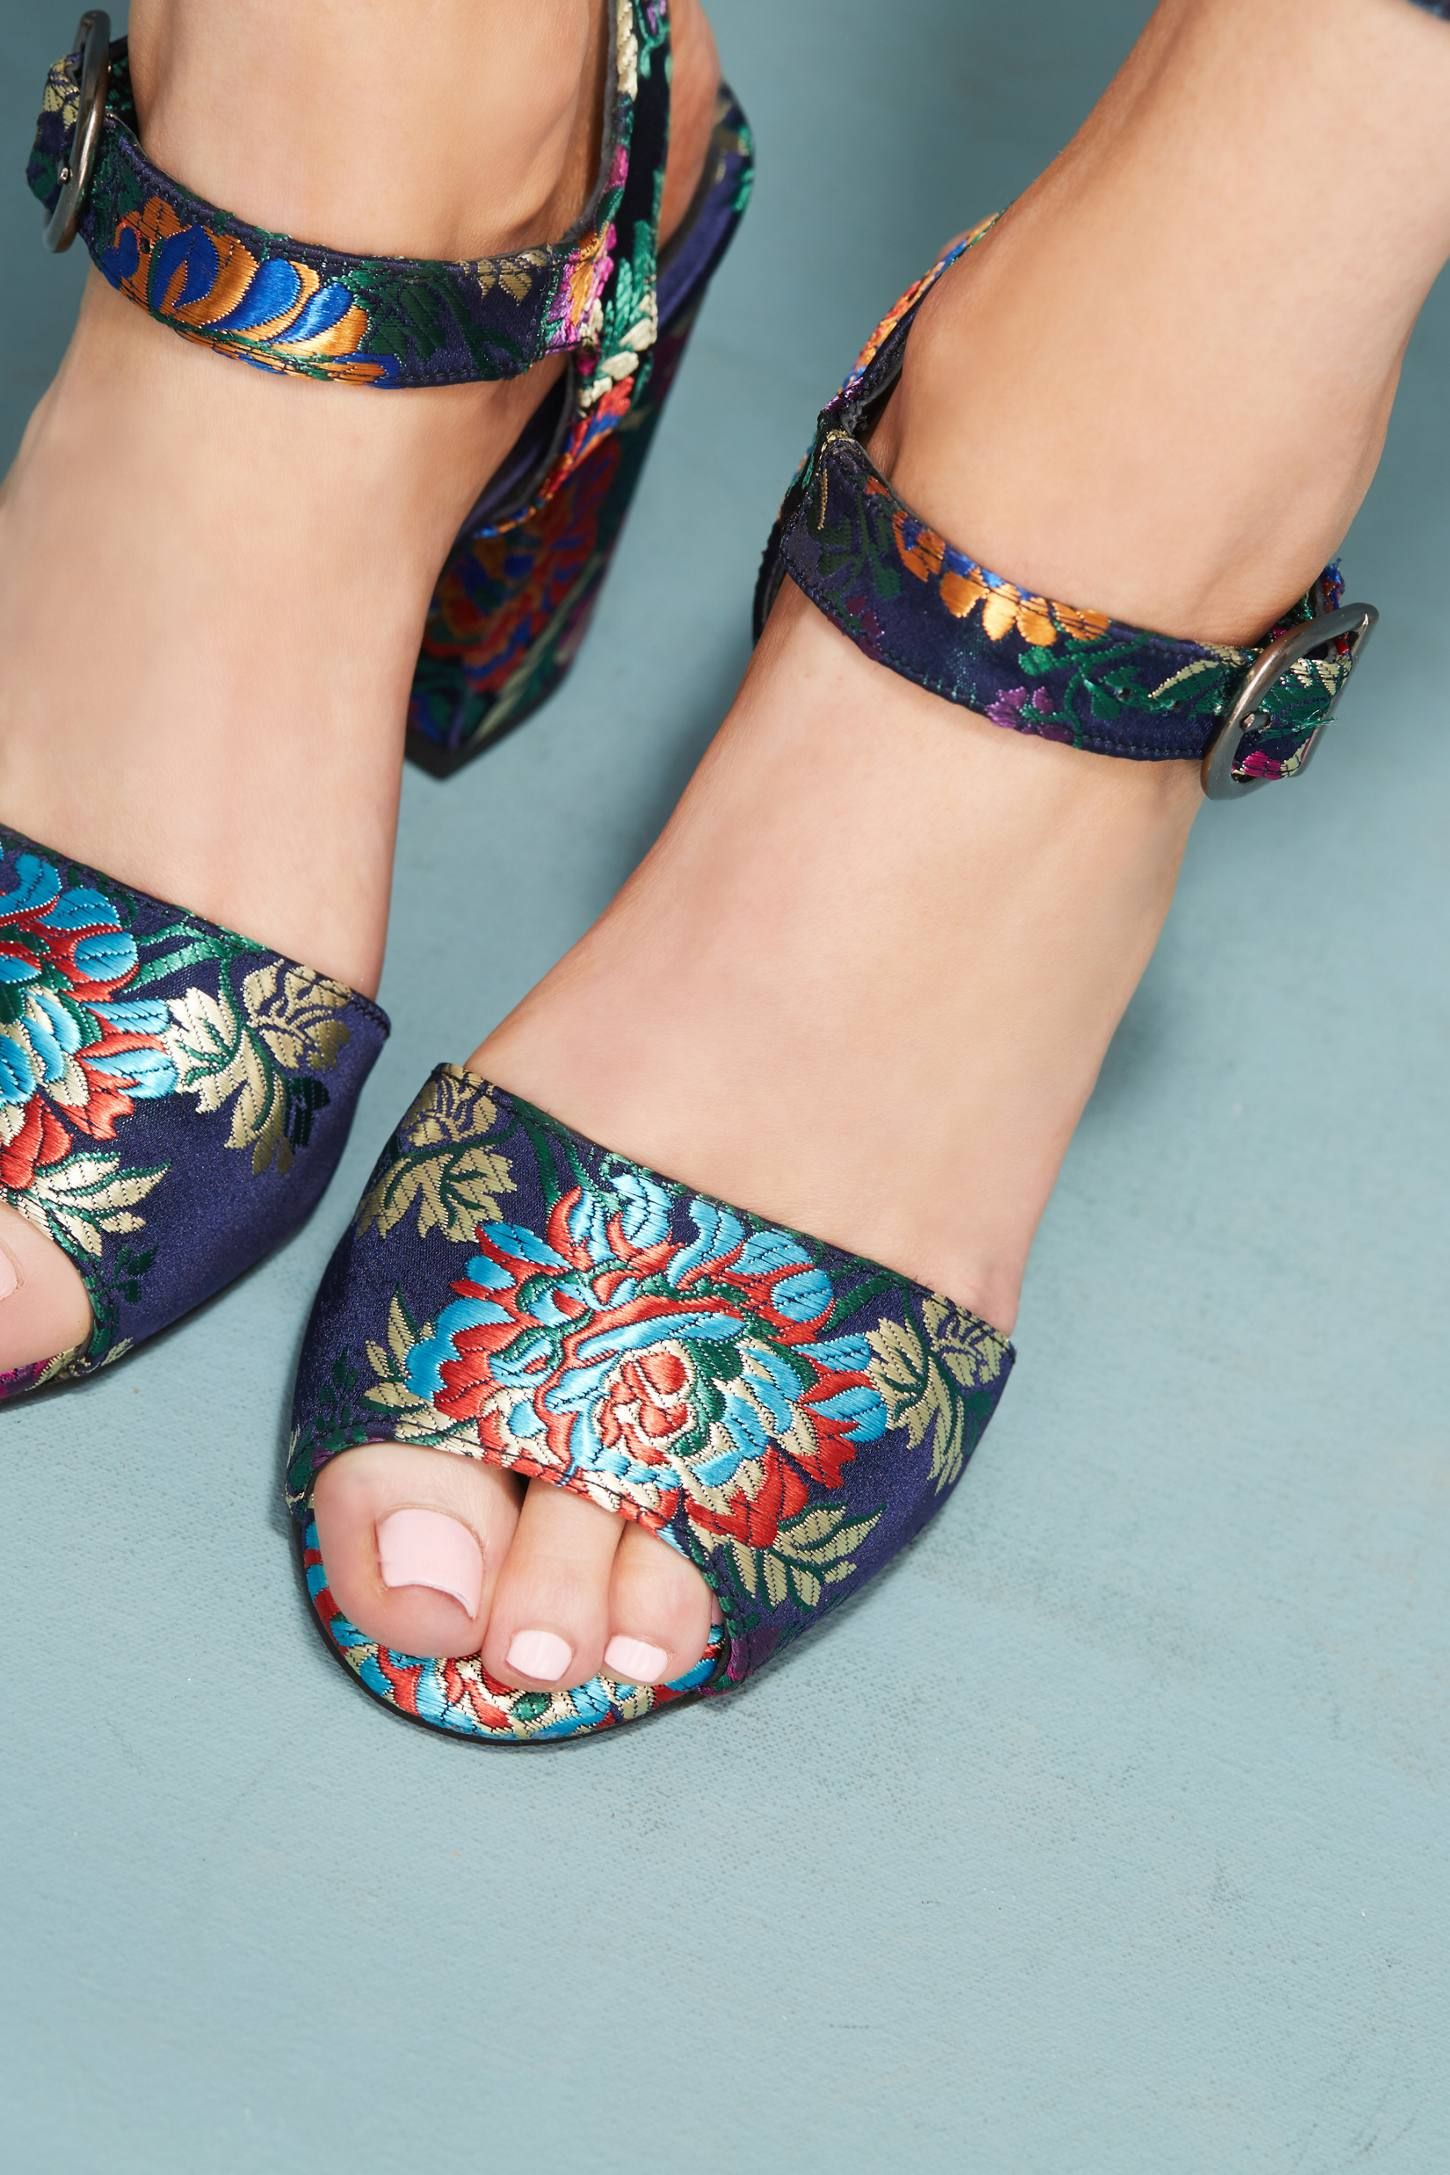 6580e384ebcd Shop the Chio Brocade Block Heel Sandals and more Anthropologie at  Anthropologie today. Read customer reviews